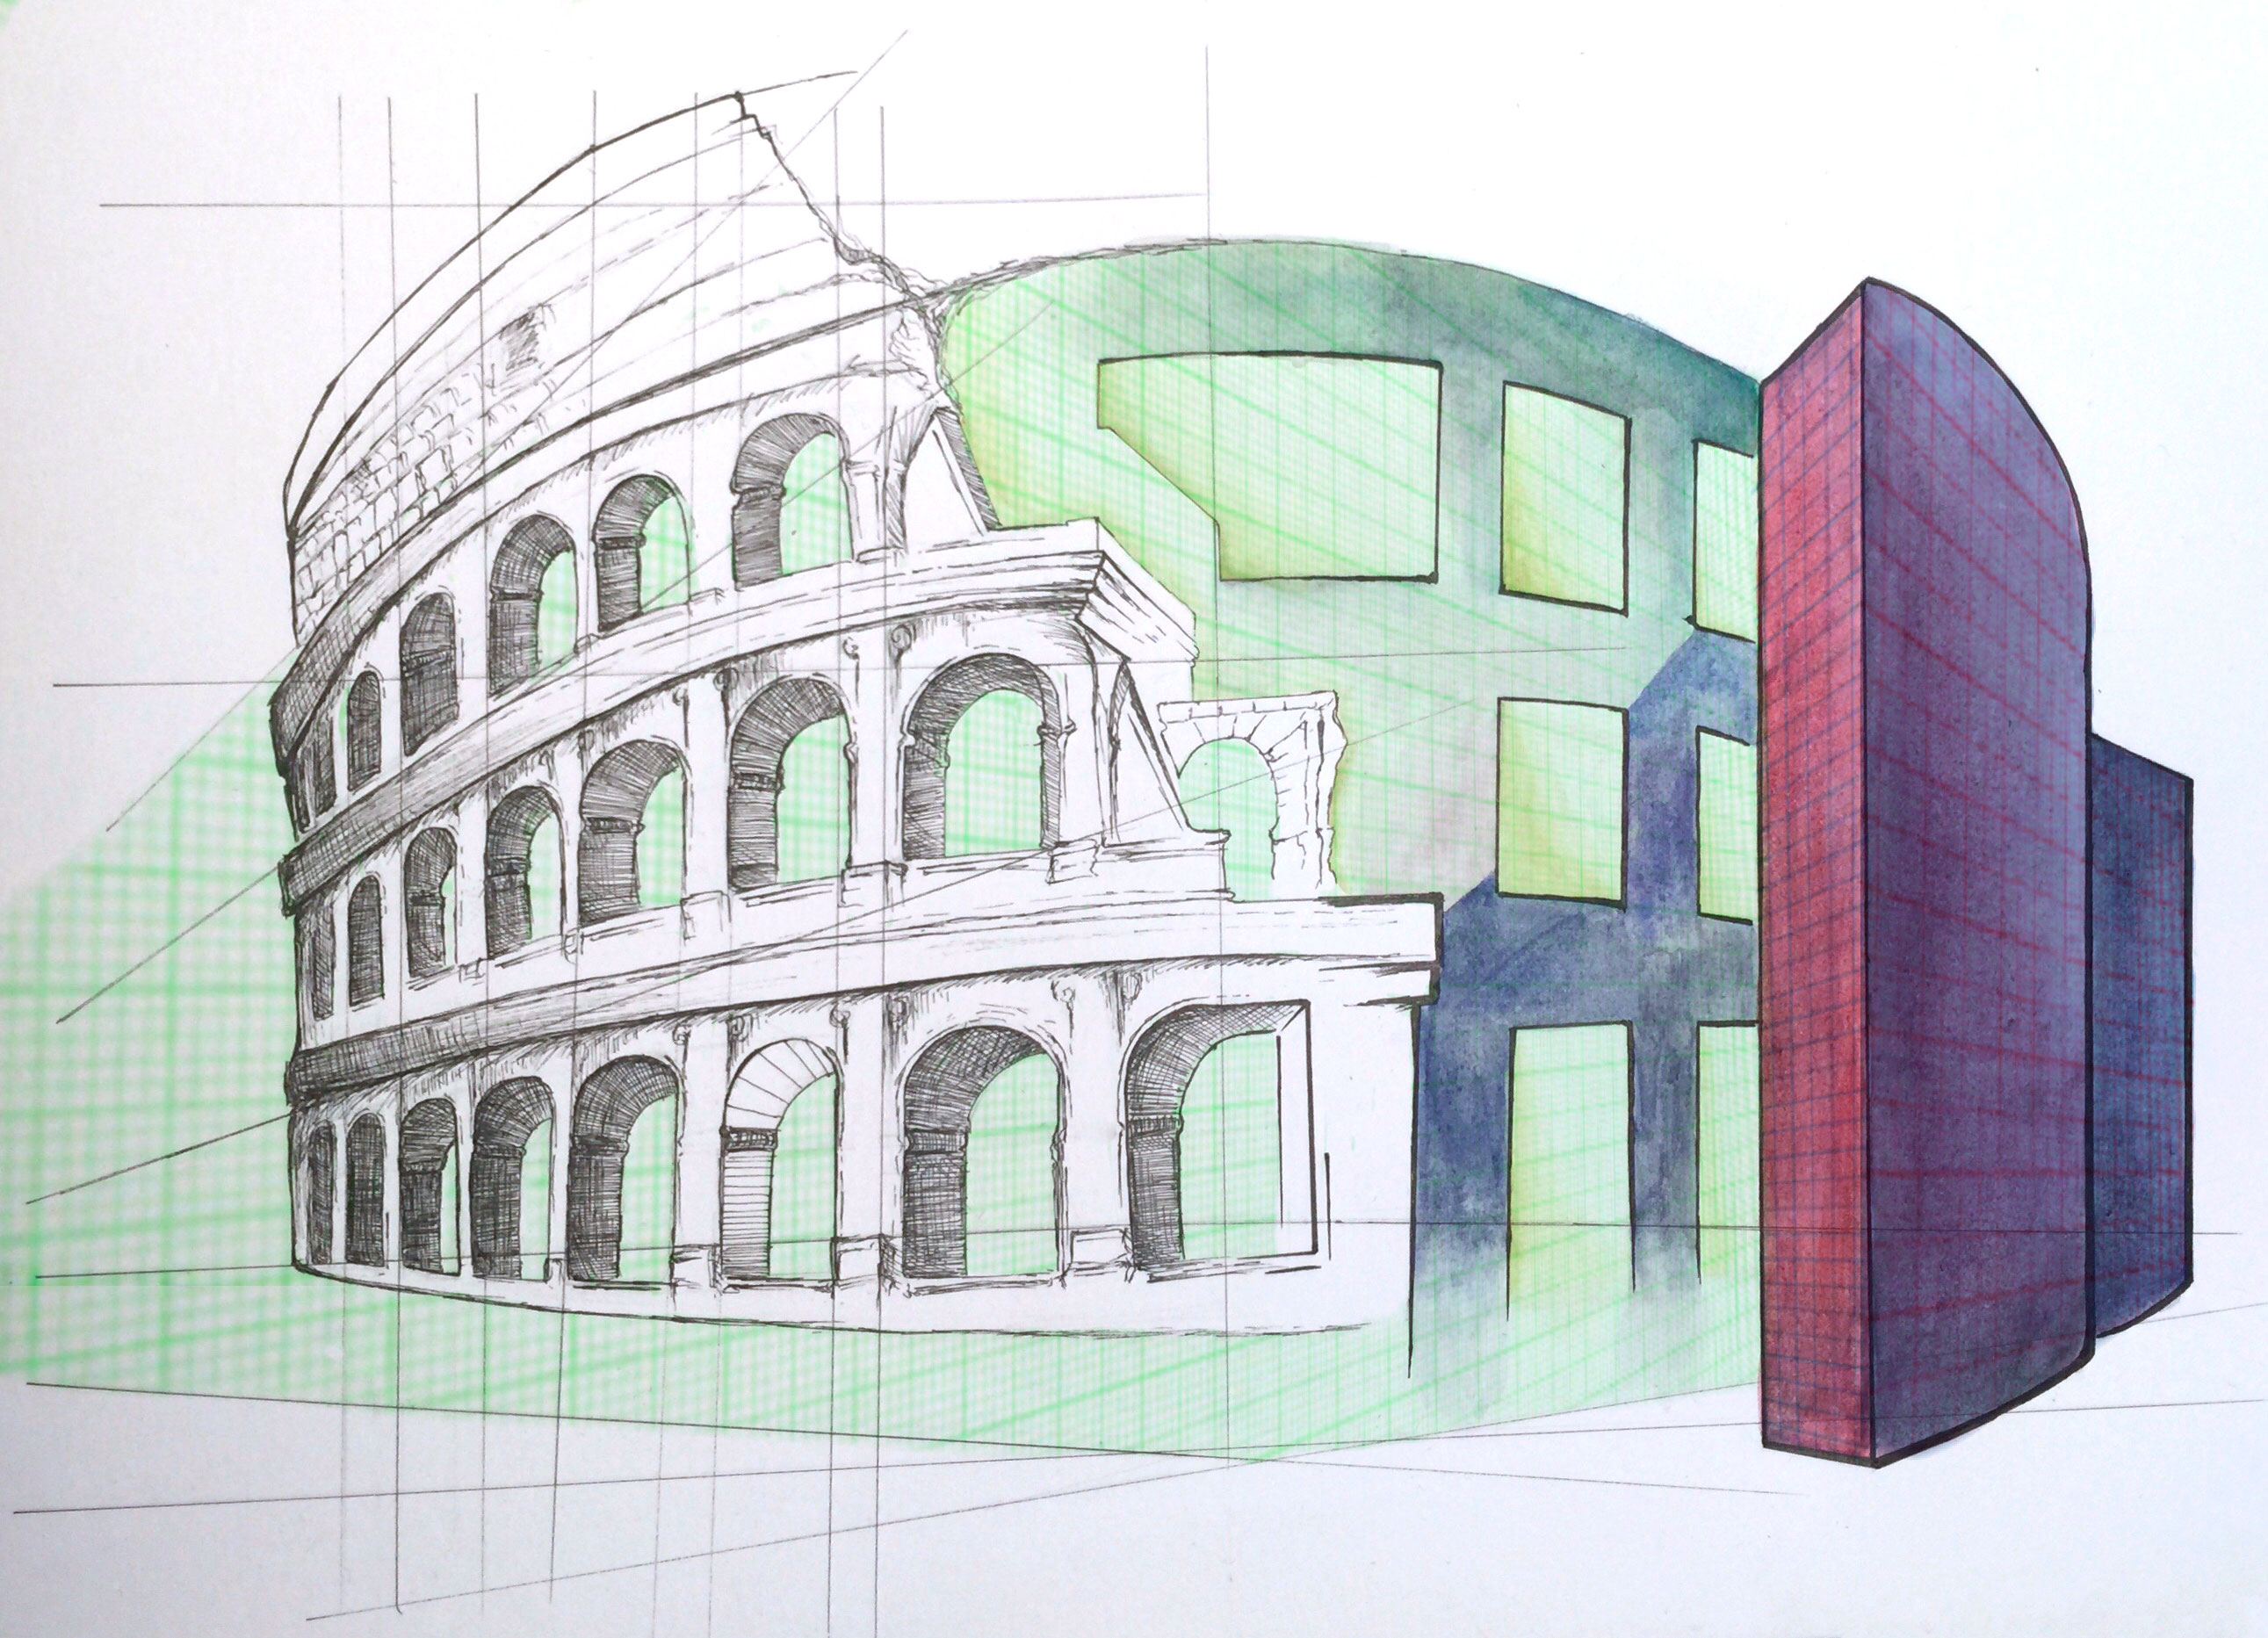 An illustration of a blueprint of the Colosseum blended with modern brutalist architechture